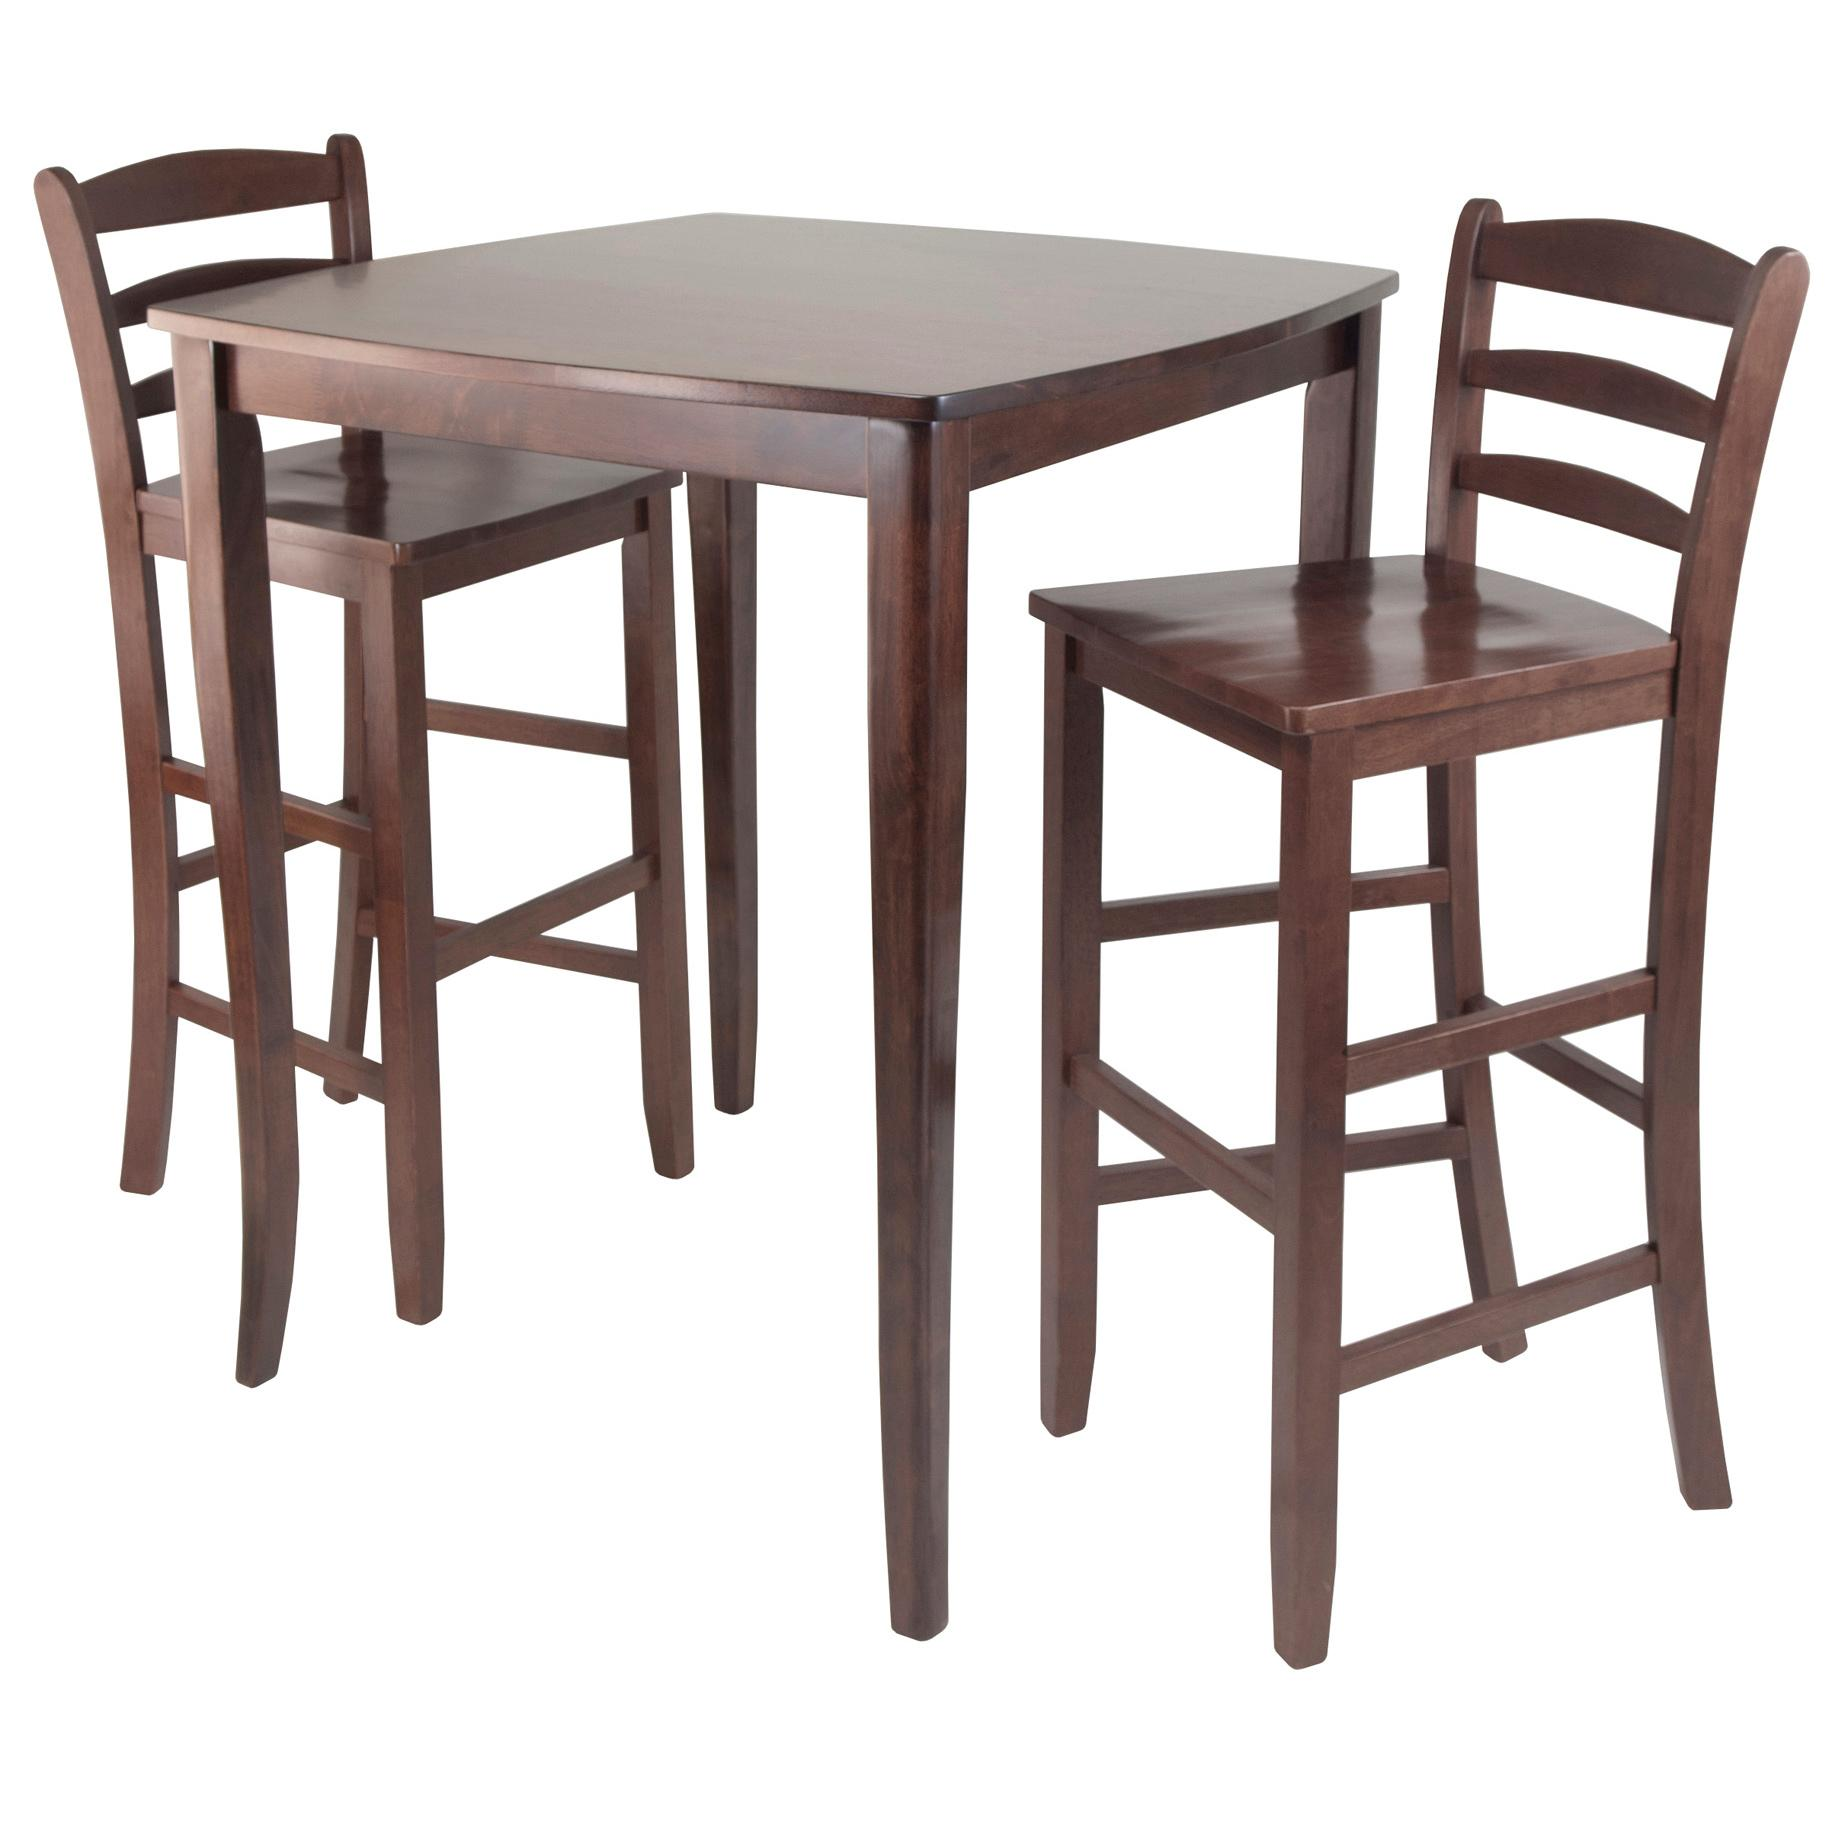 View larger  sc 1 st  Amazon.com : high pub dining table set - Pezcame.Com